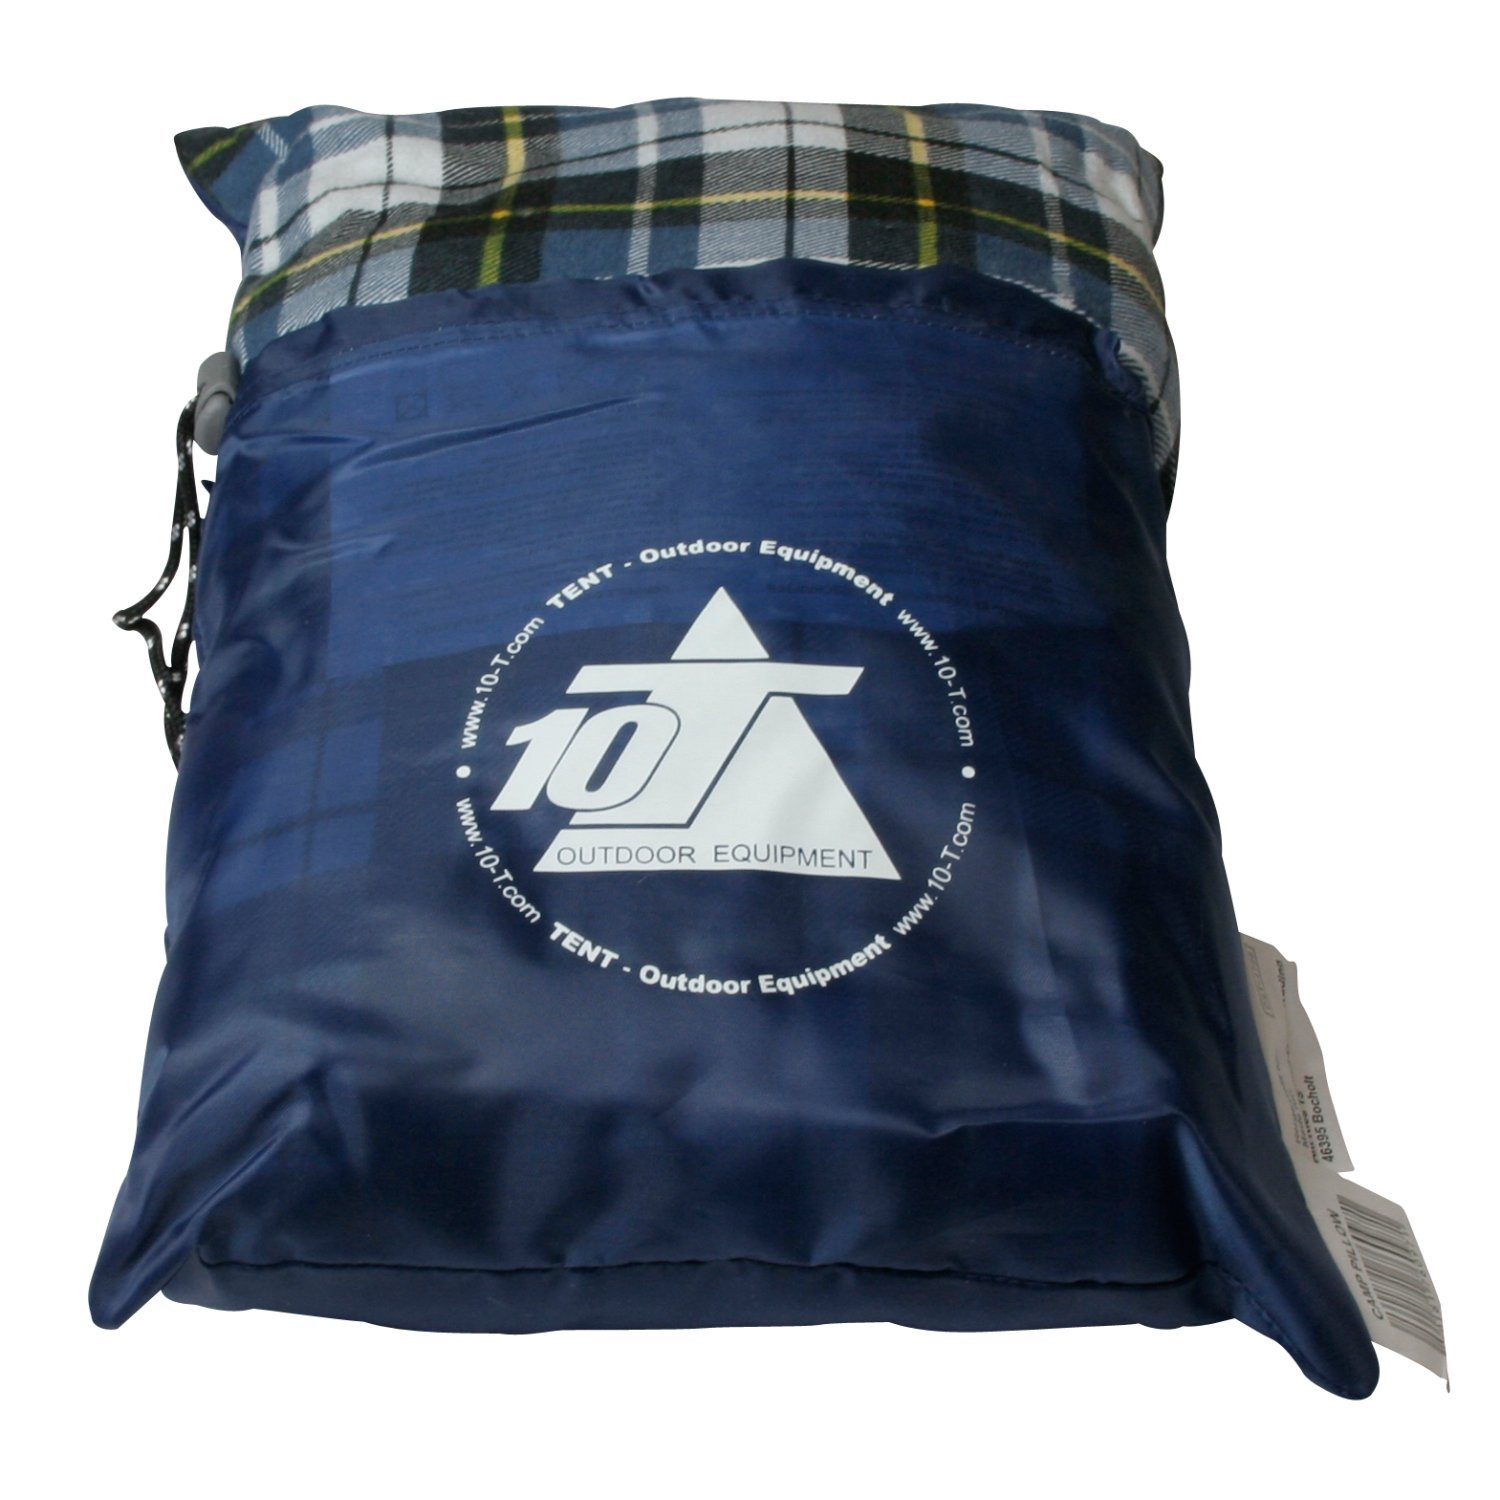 10T Outdoor Equipment 10T Camp Pillow Almohada de camping, Azul, Estándar: Amazon.es: Deportes y aire libre